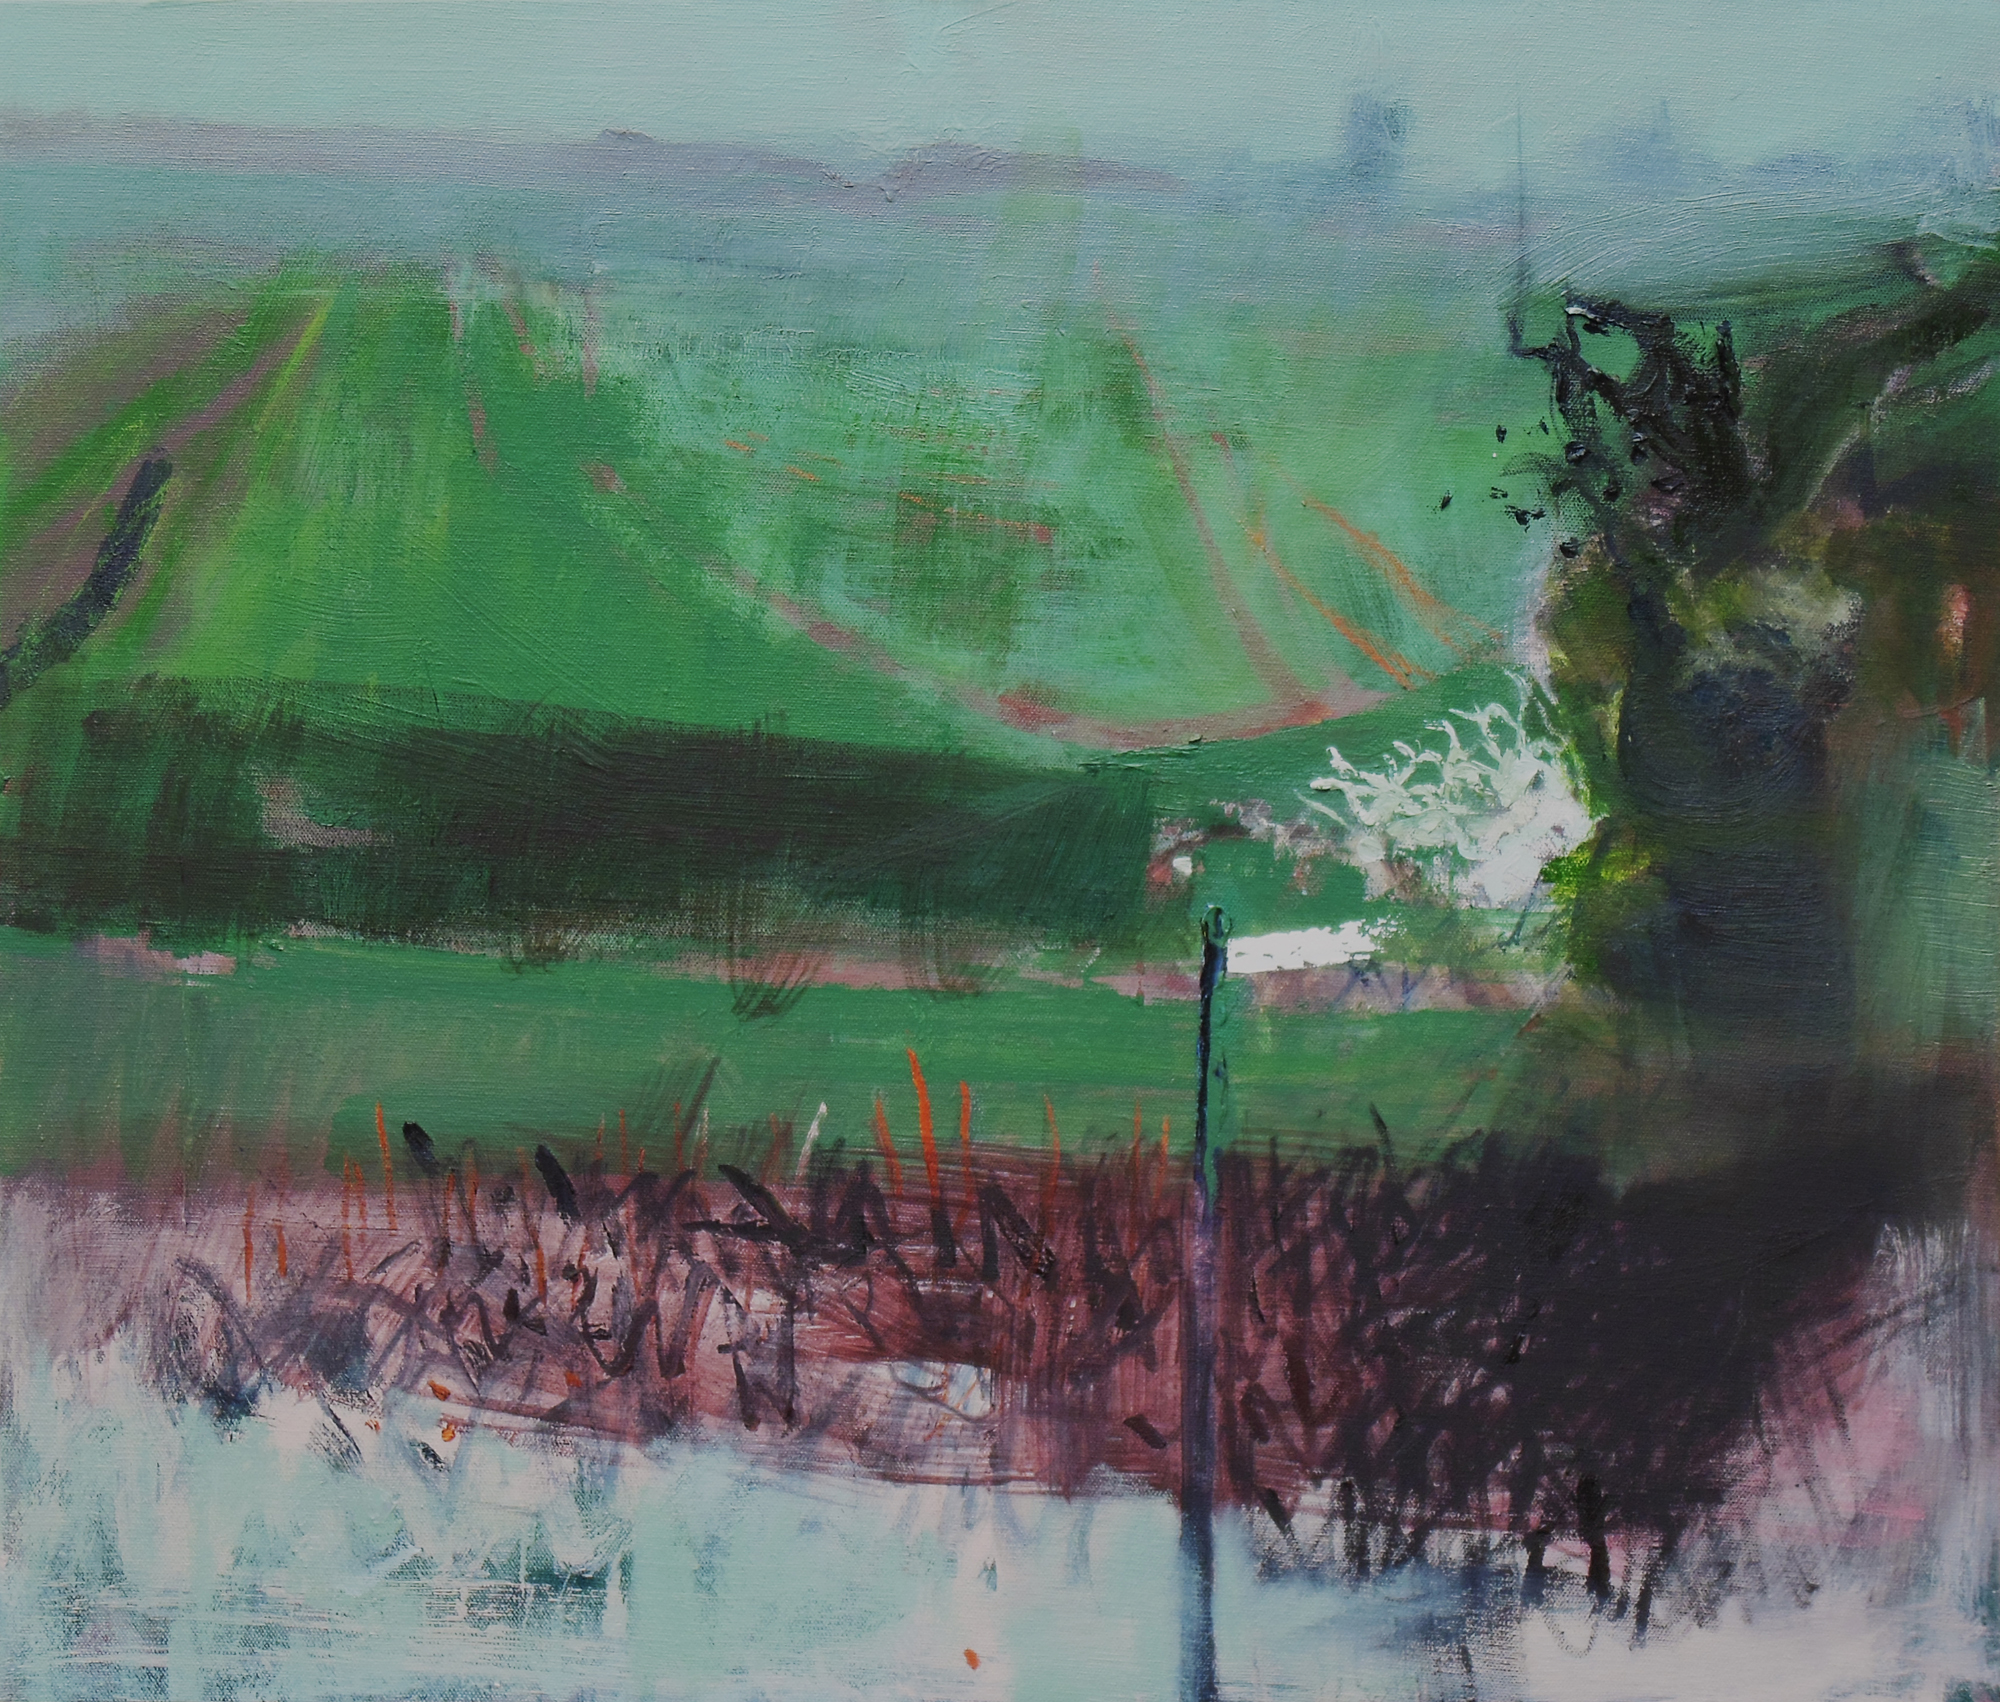 Early Spring North Oxfordshire 10am, oil on canvas, 600 x 700mm web.jpg